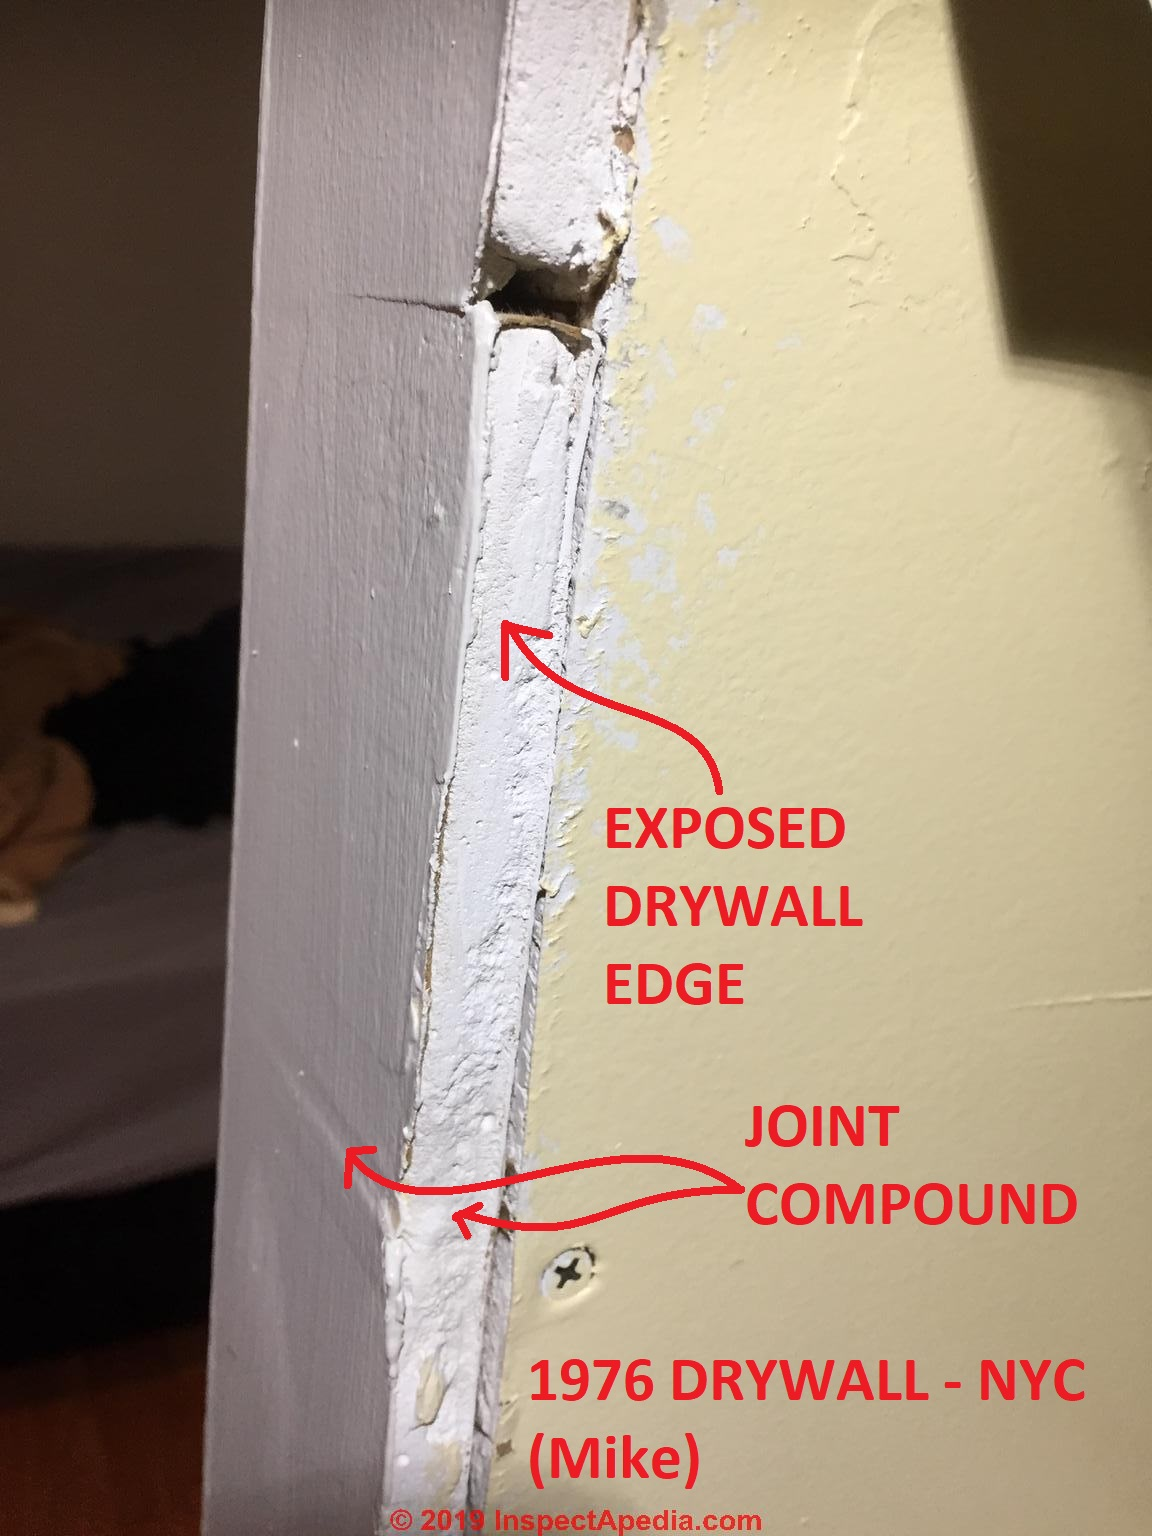 Asbestos Content In Drywall & Joint Compound?